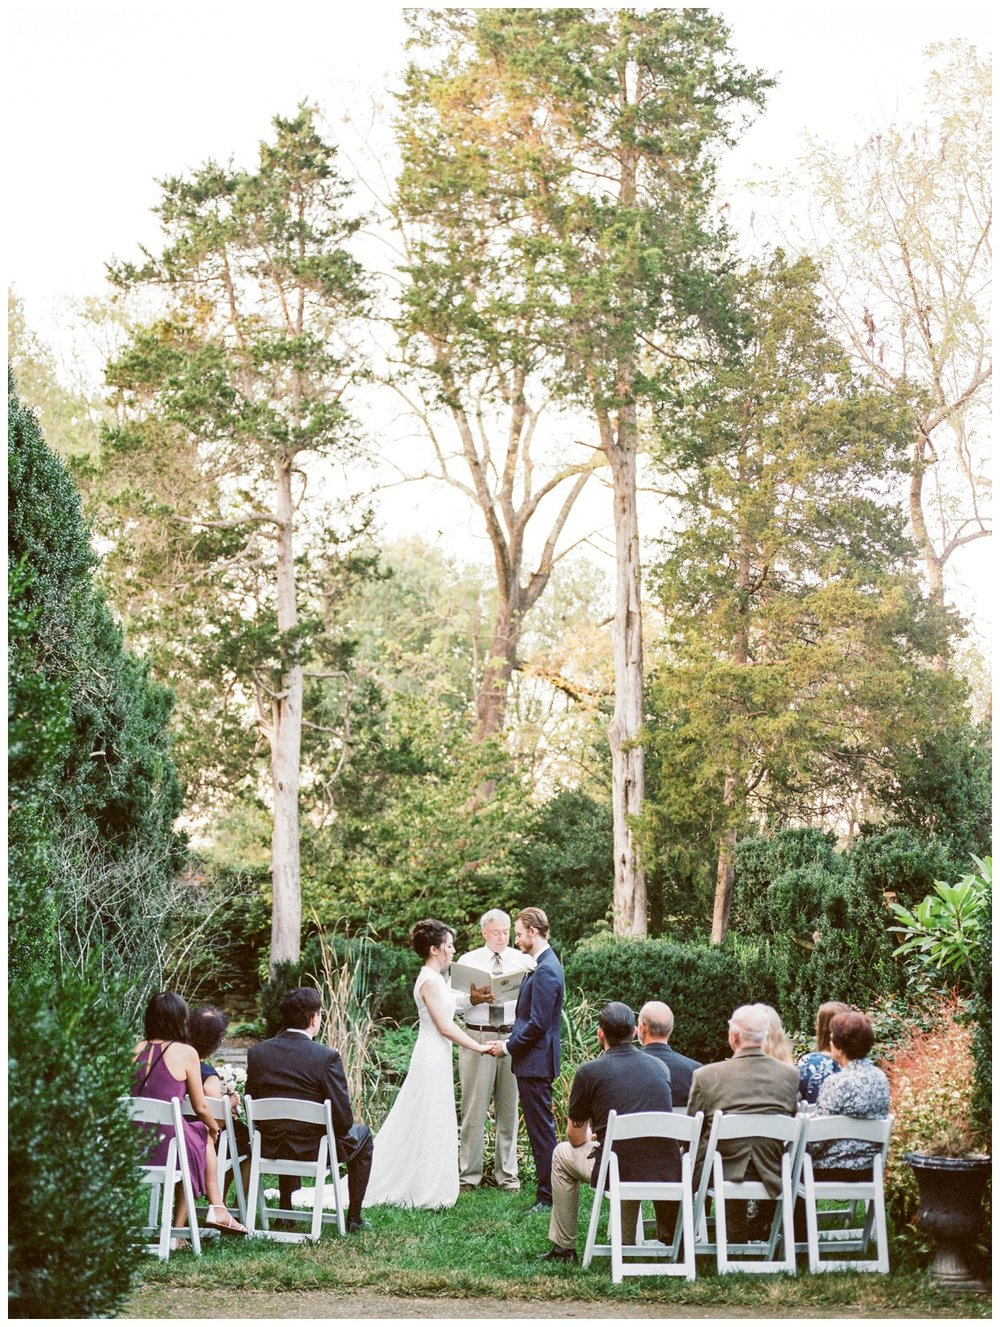 Intimate fall wedding at the Oatlands in Leesburg Virginia by Washington DC fine art wedding photographer Lissa Ryan Photography